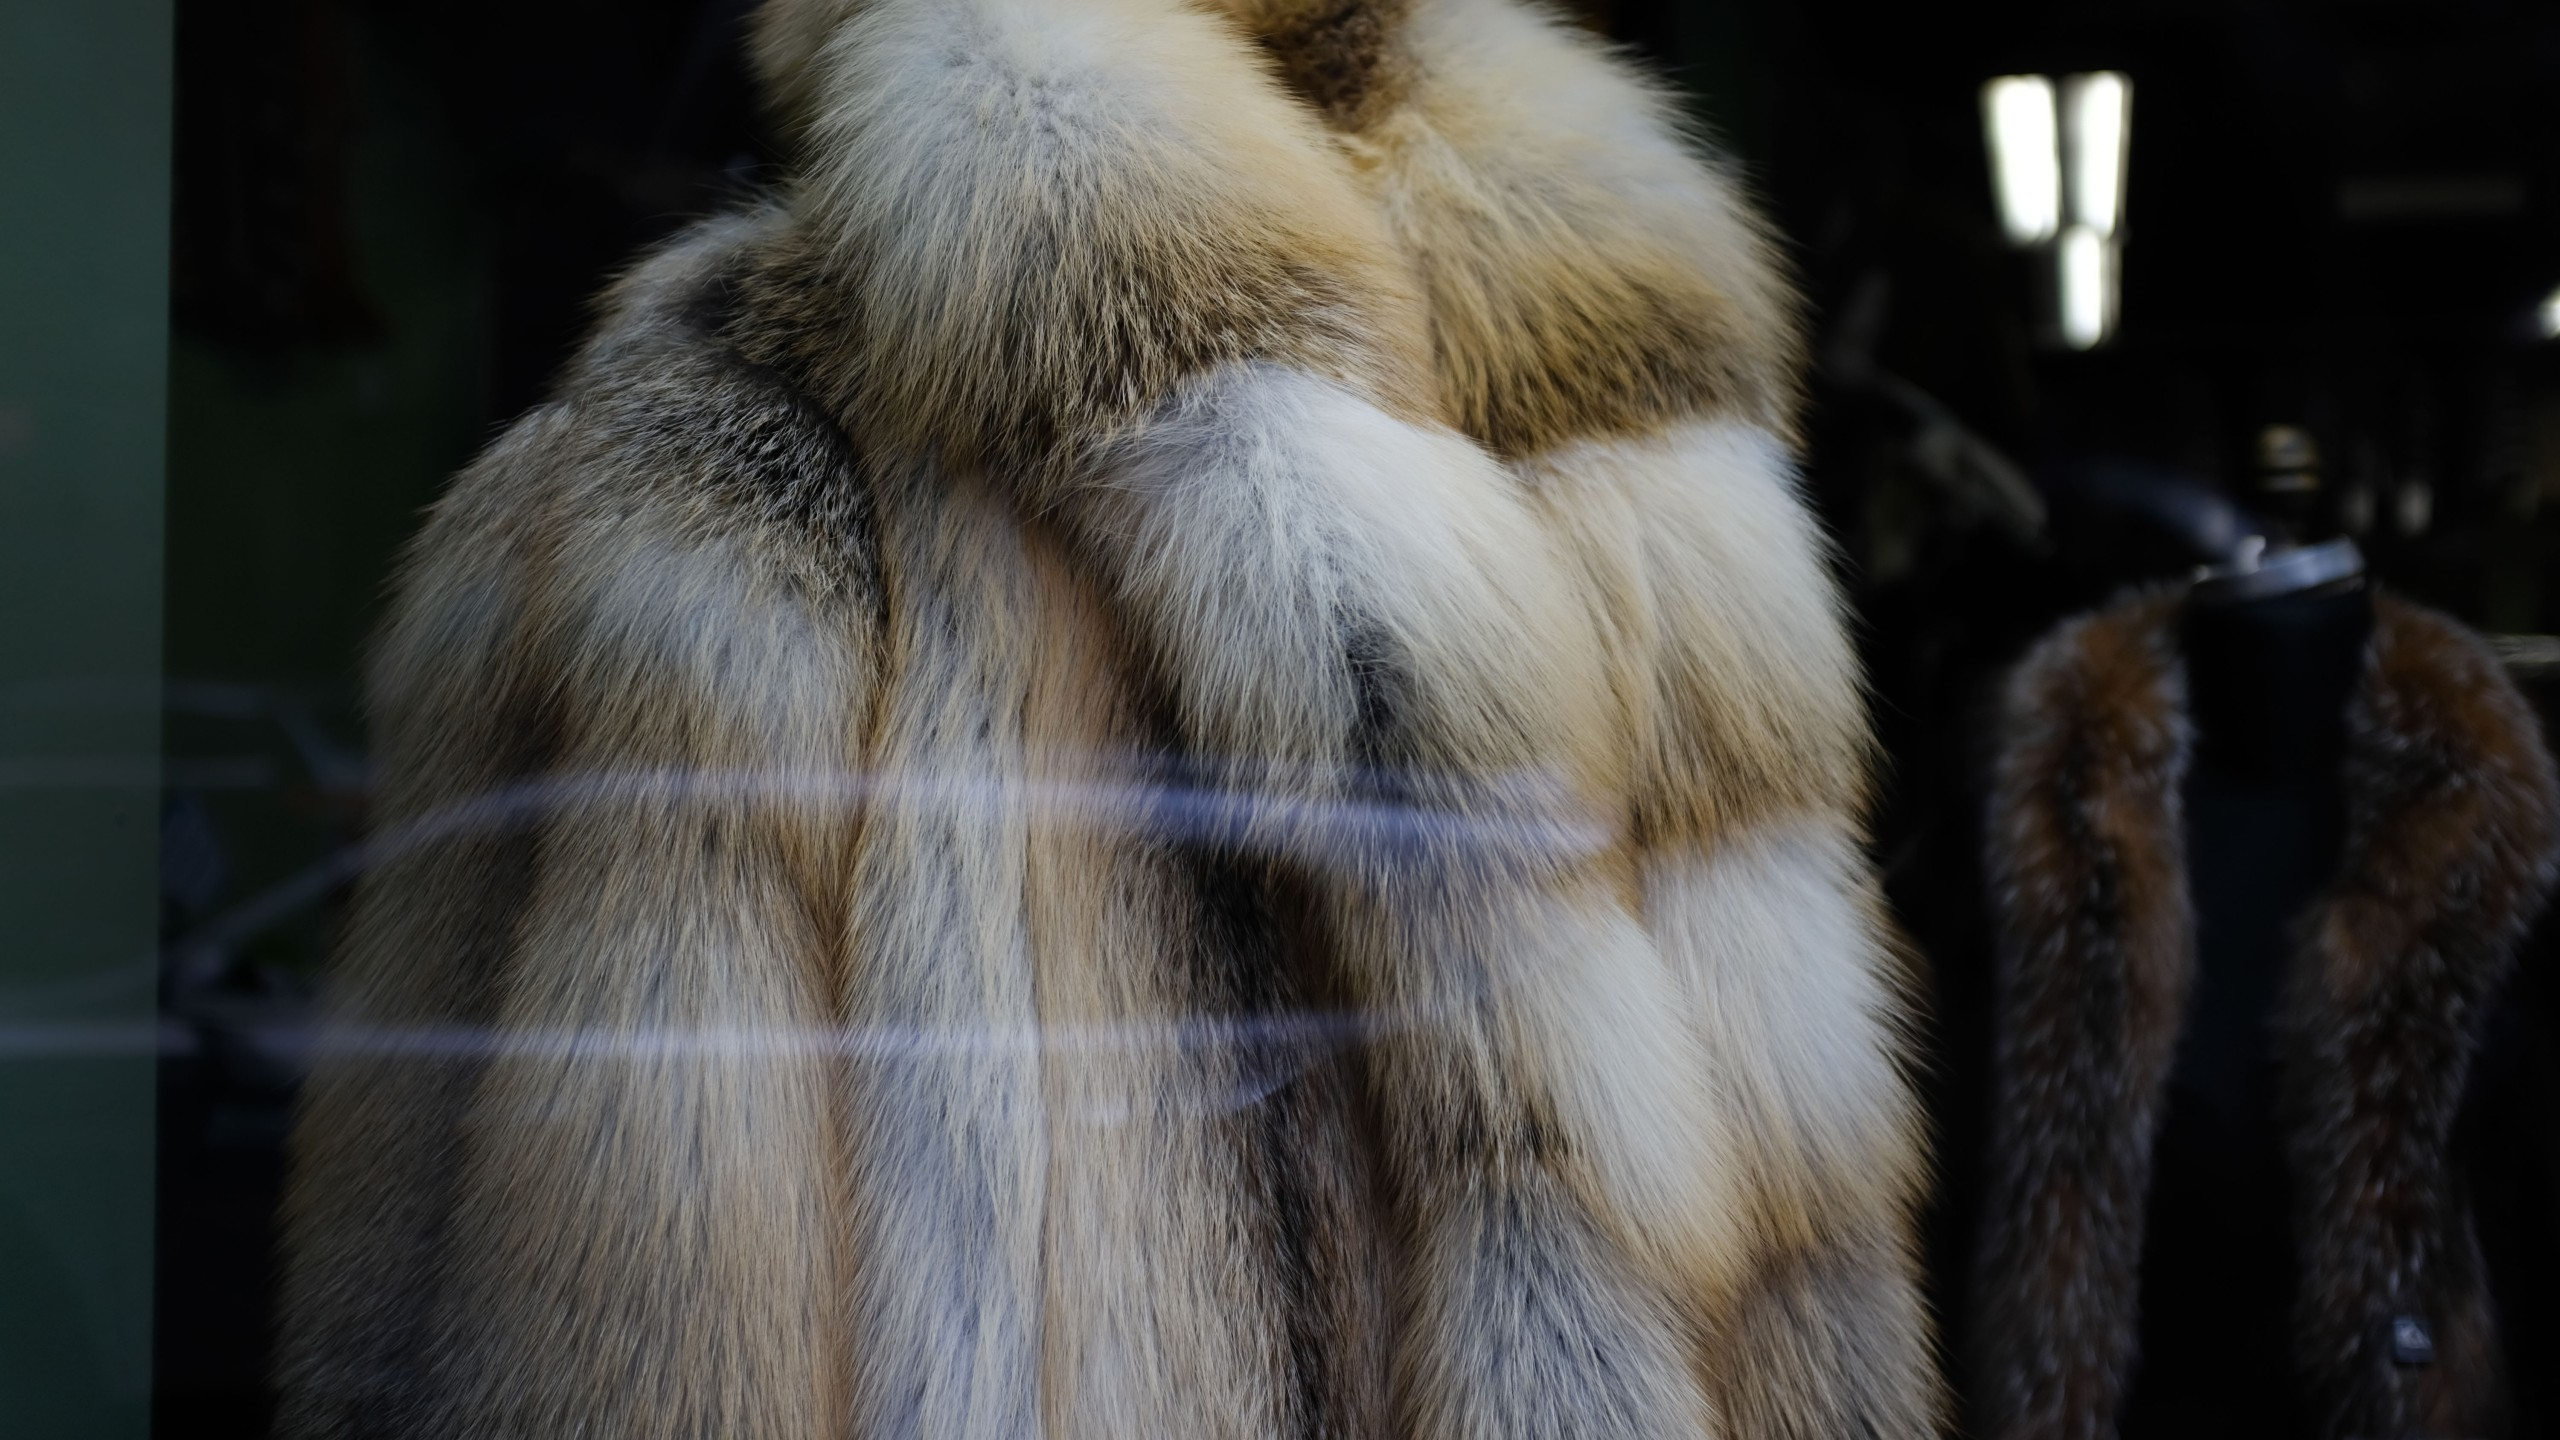 Fur coats and hats are displayed in the window of a fur store in the fur district in Manhattan on March 29, 2019 in New York City. (Credit: Spencer Platt/Getty Images)